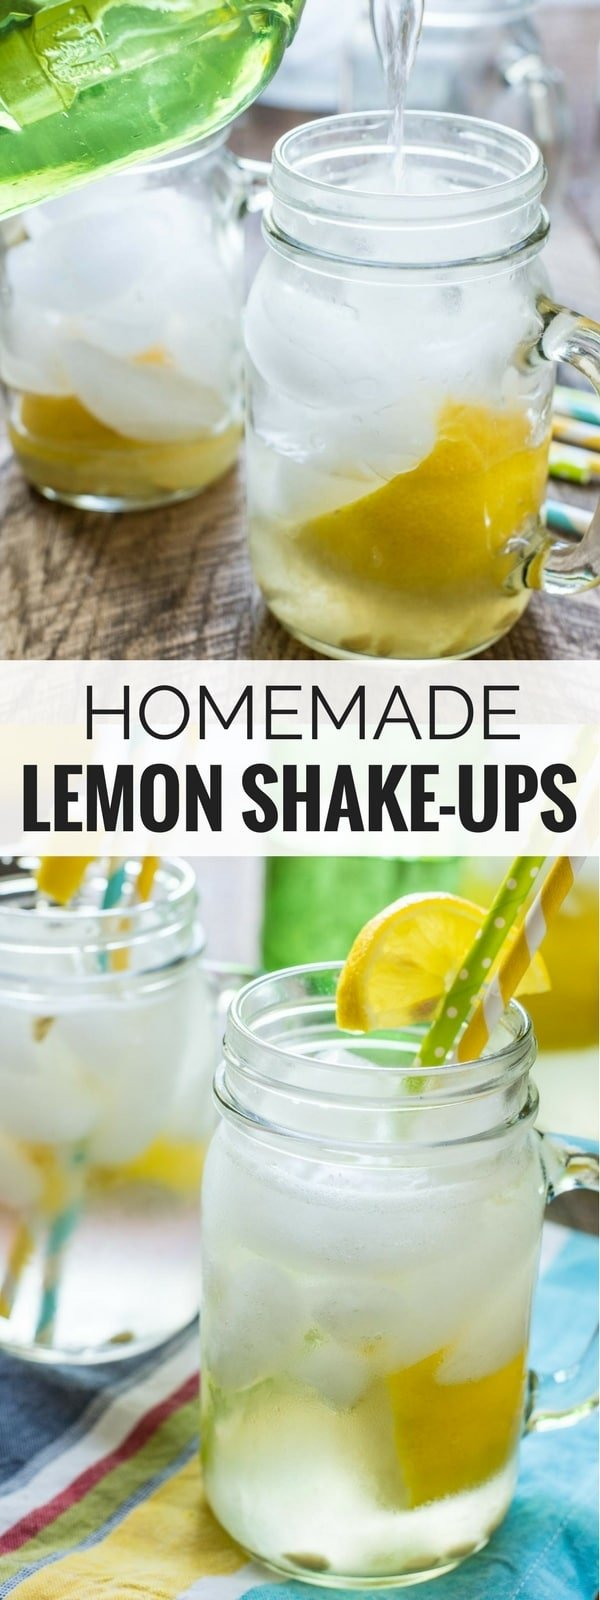 These Homemade Lemon Shake Ups are so easy to make and so refreshing! Get the taste of summer festivals in your own back yard!